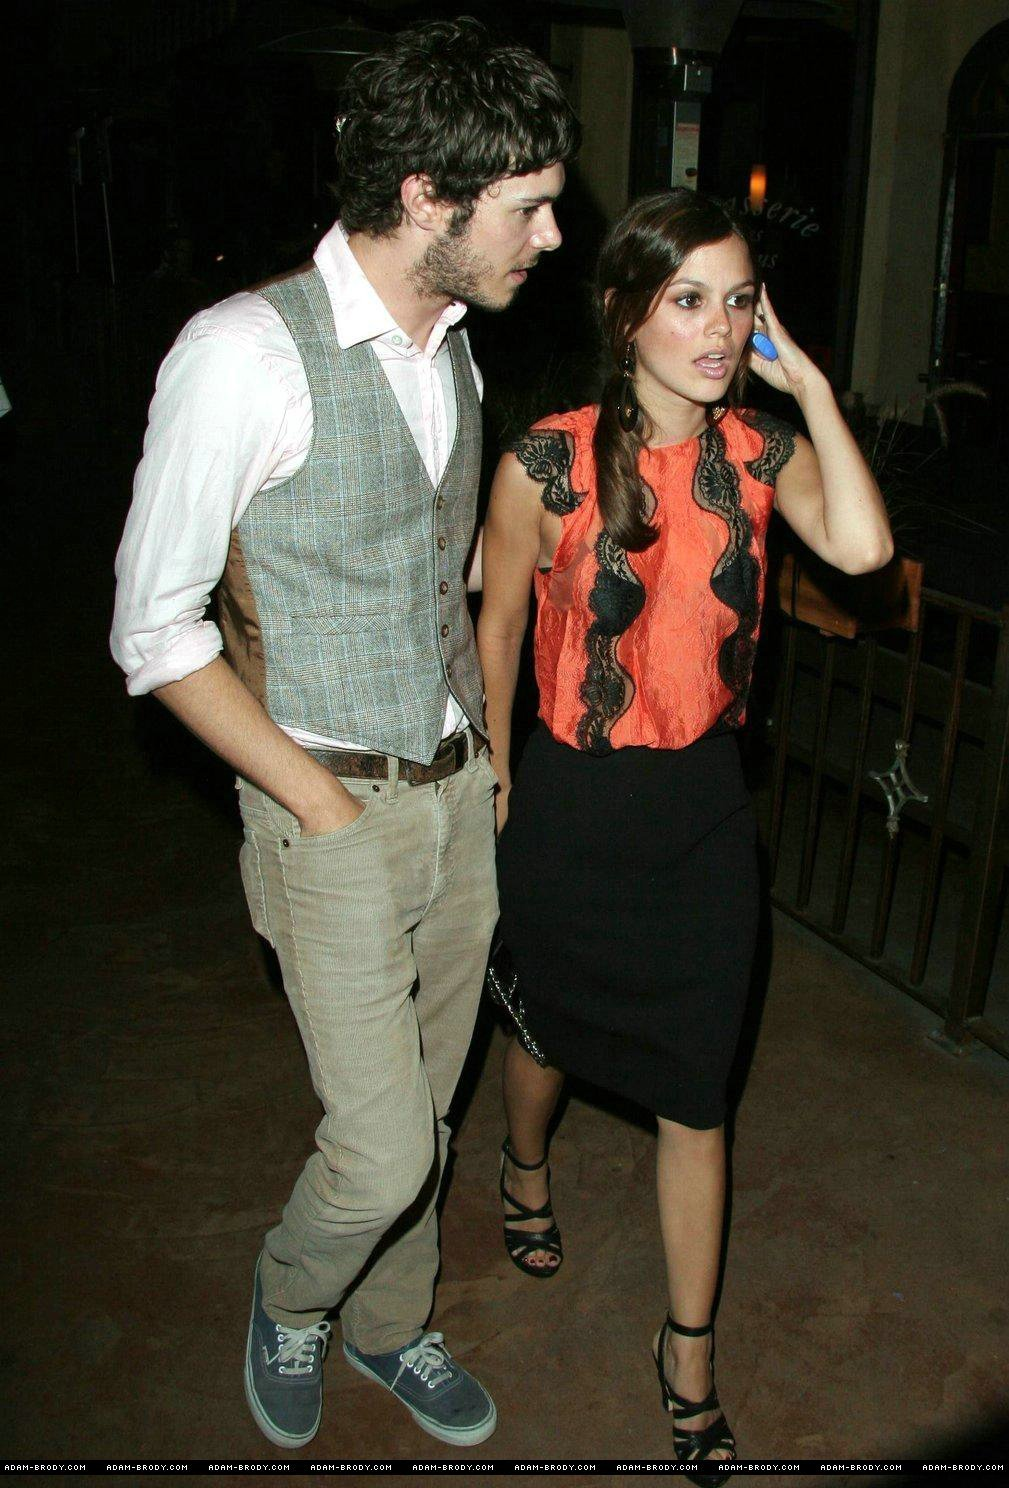 ... .com/clubs/adam-brody-and-rachel-bilson/images/2302140/title/r-photo